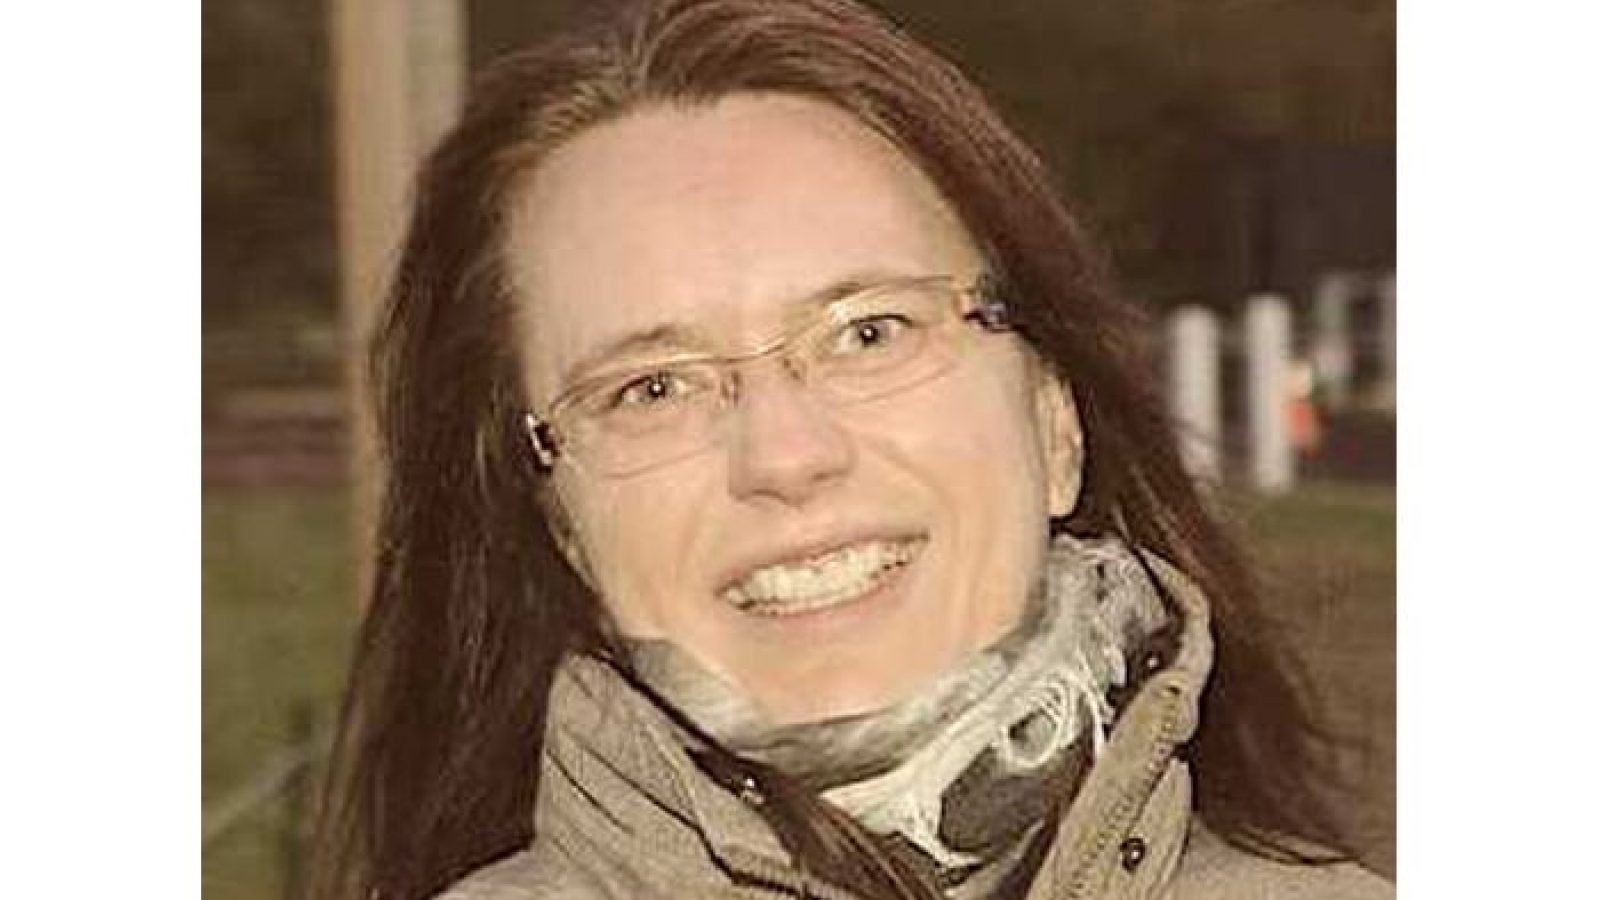 Bettina Hvidemose